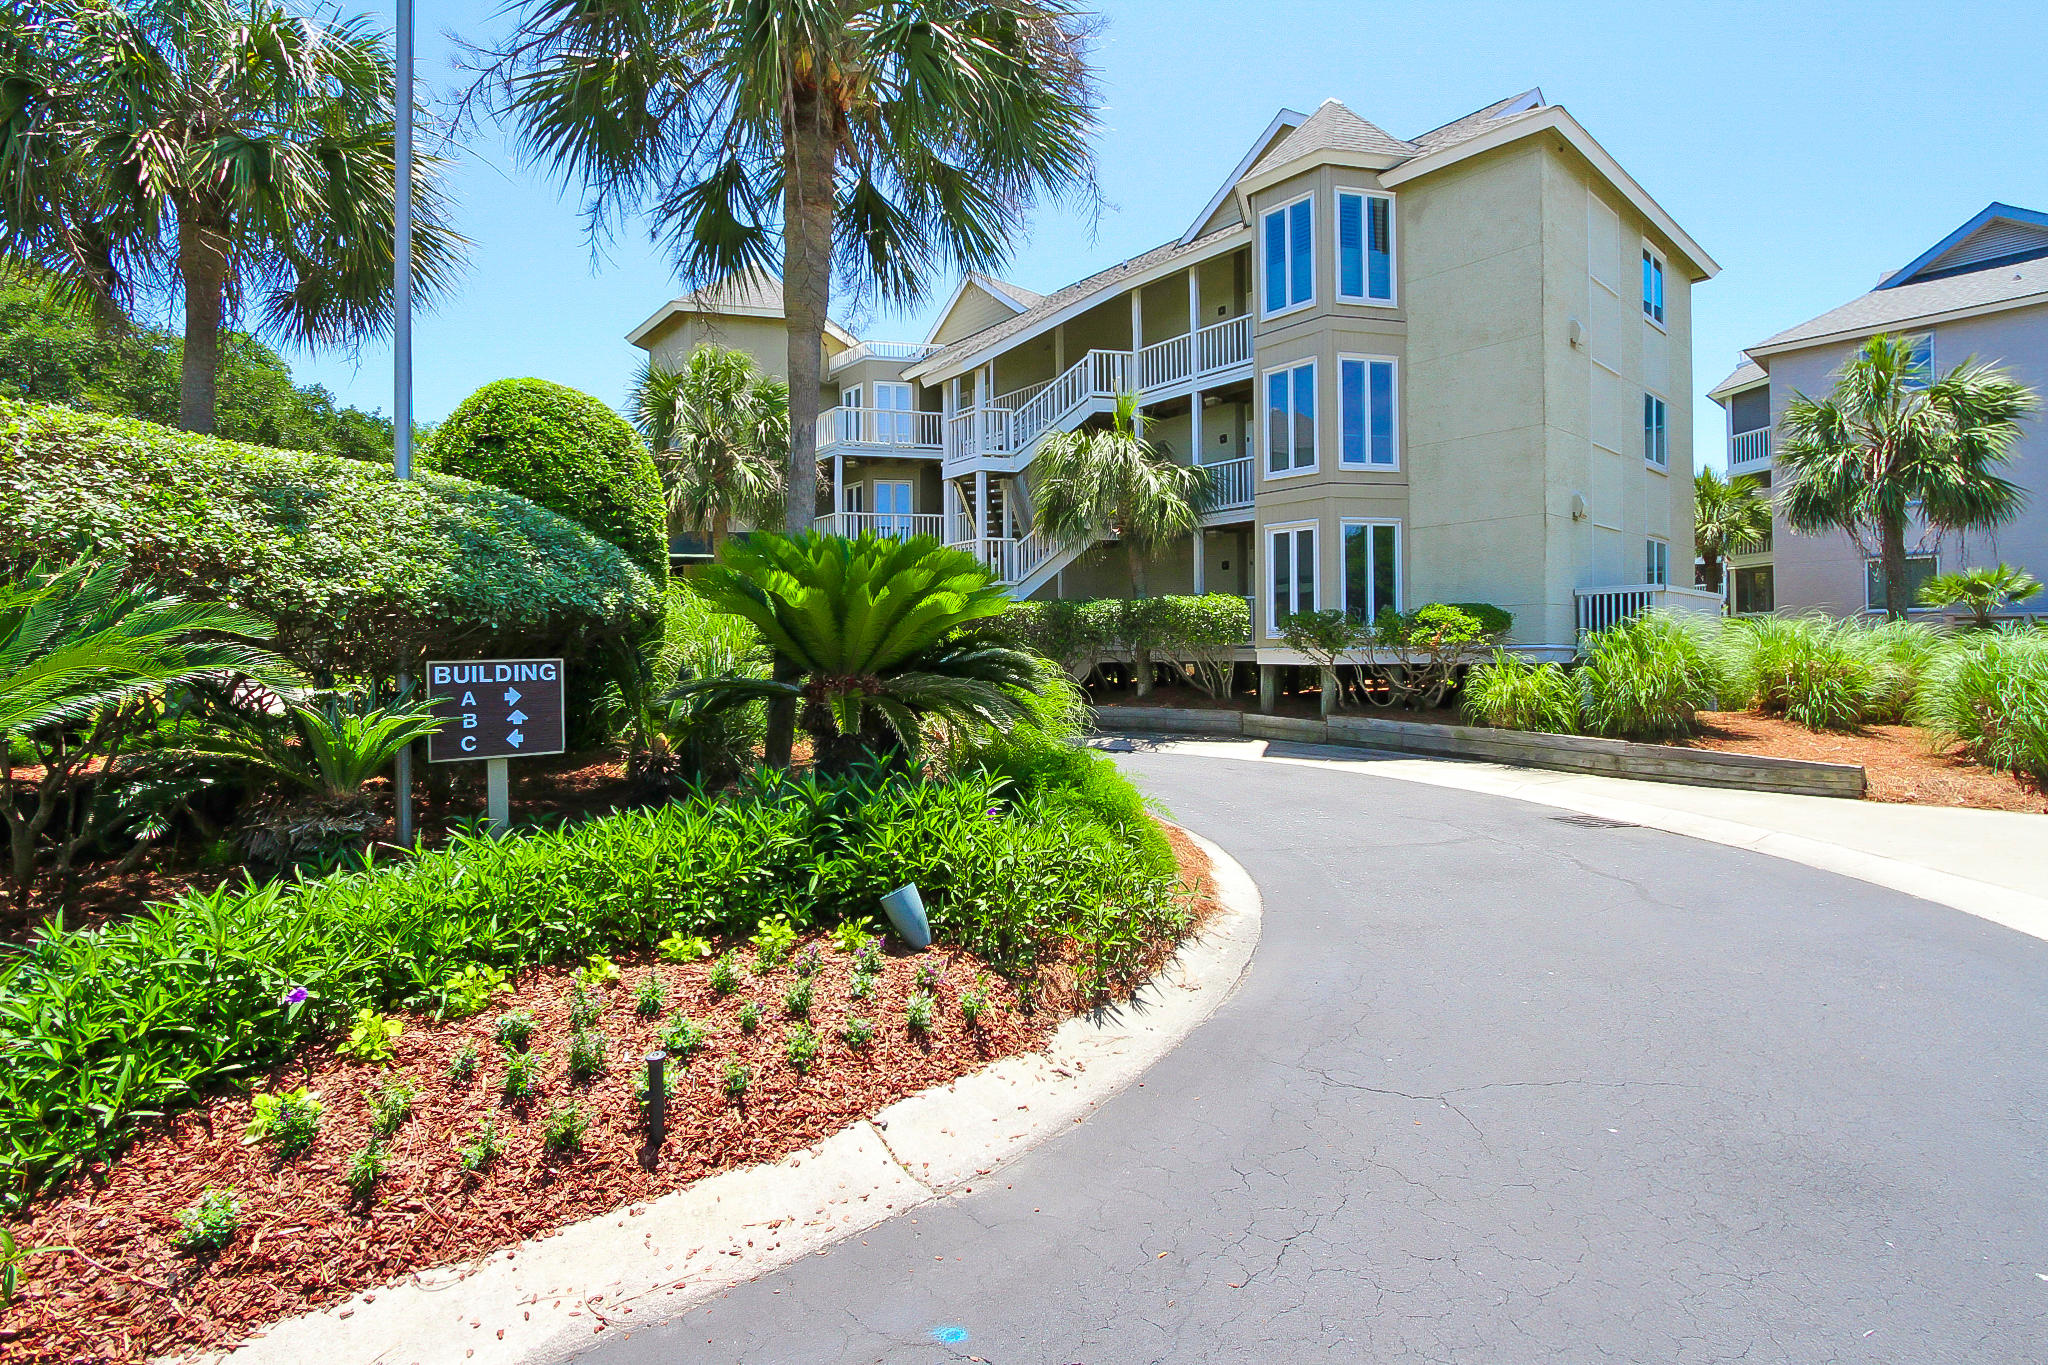 104 A Port O'call Isle Of Palms, SC 29451